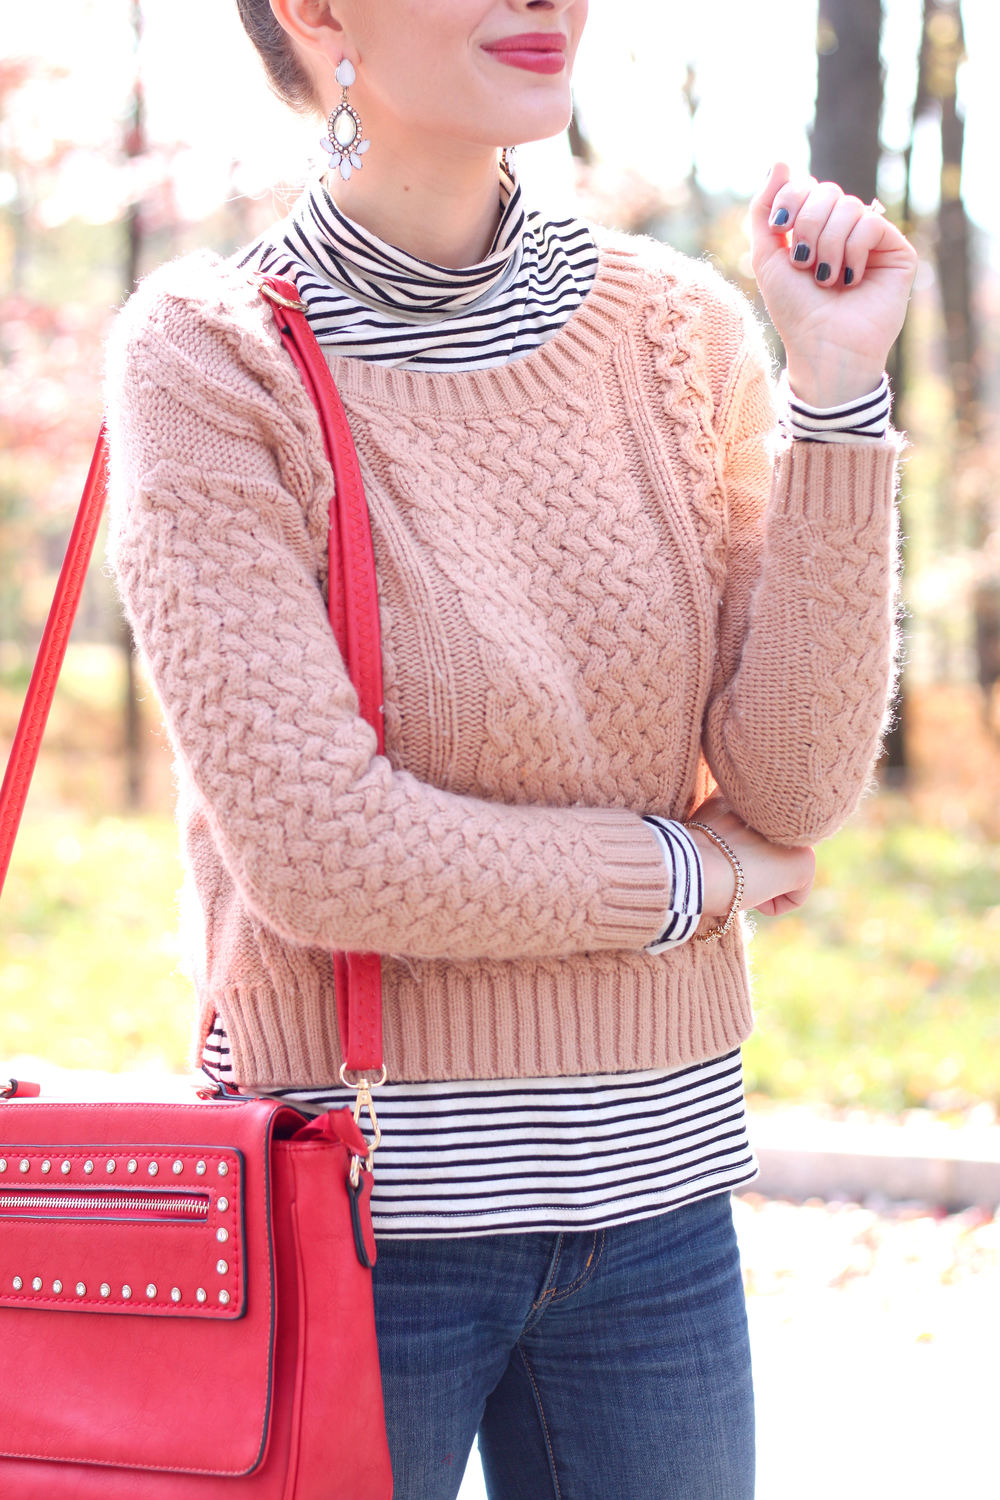 Camel and Stripes- Enchanting Elegance